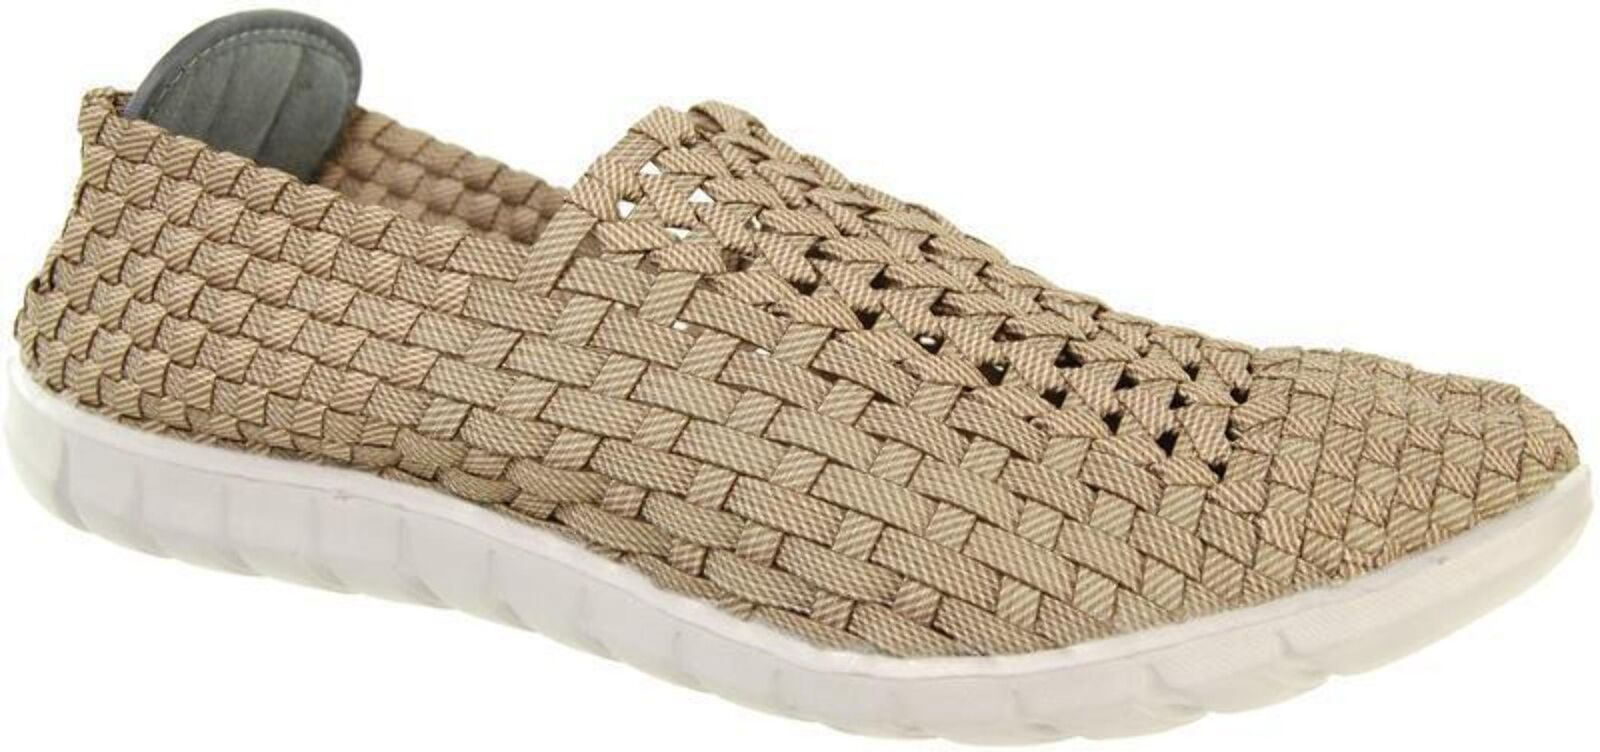 Adesso Jake A4387 Rattan Mens Elasticated shoes